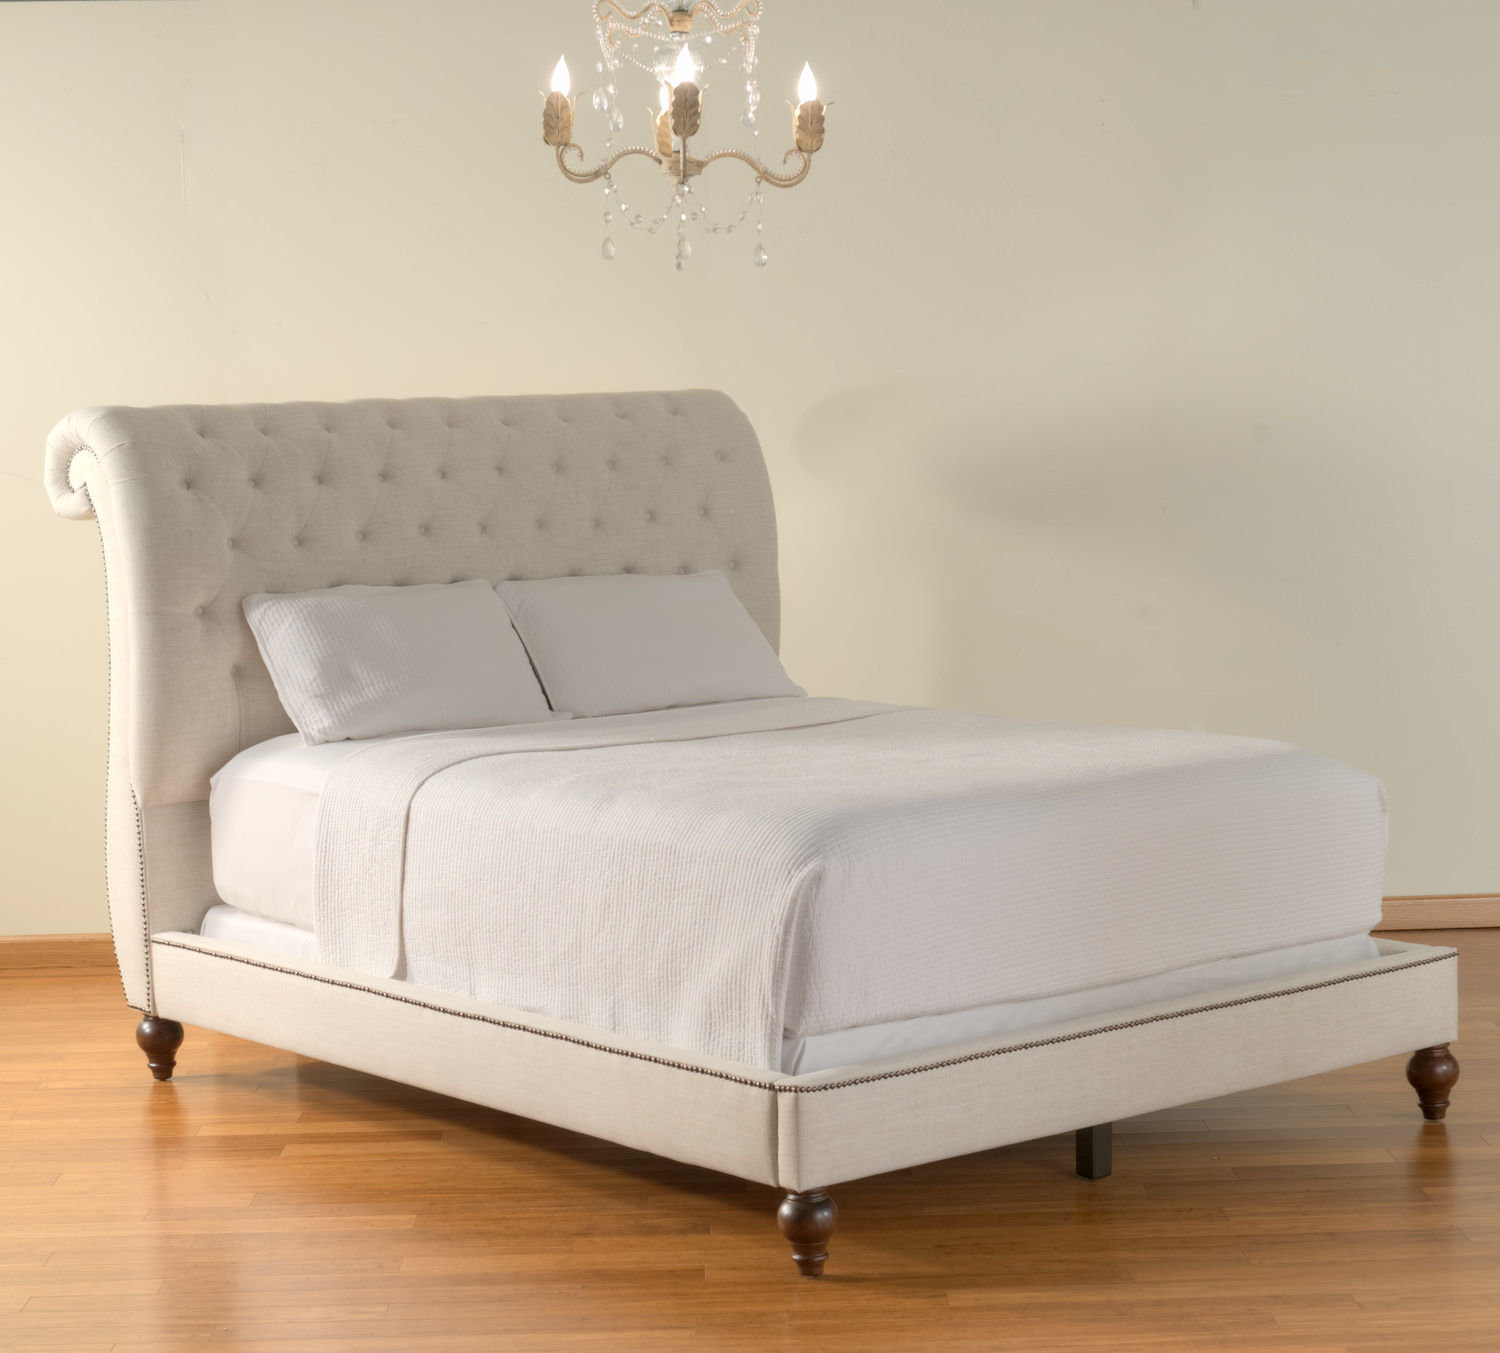 Marigold Upholstered Bed By Jonathan Louis Hom Furniture